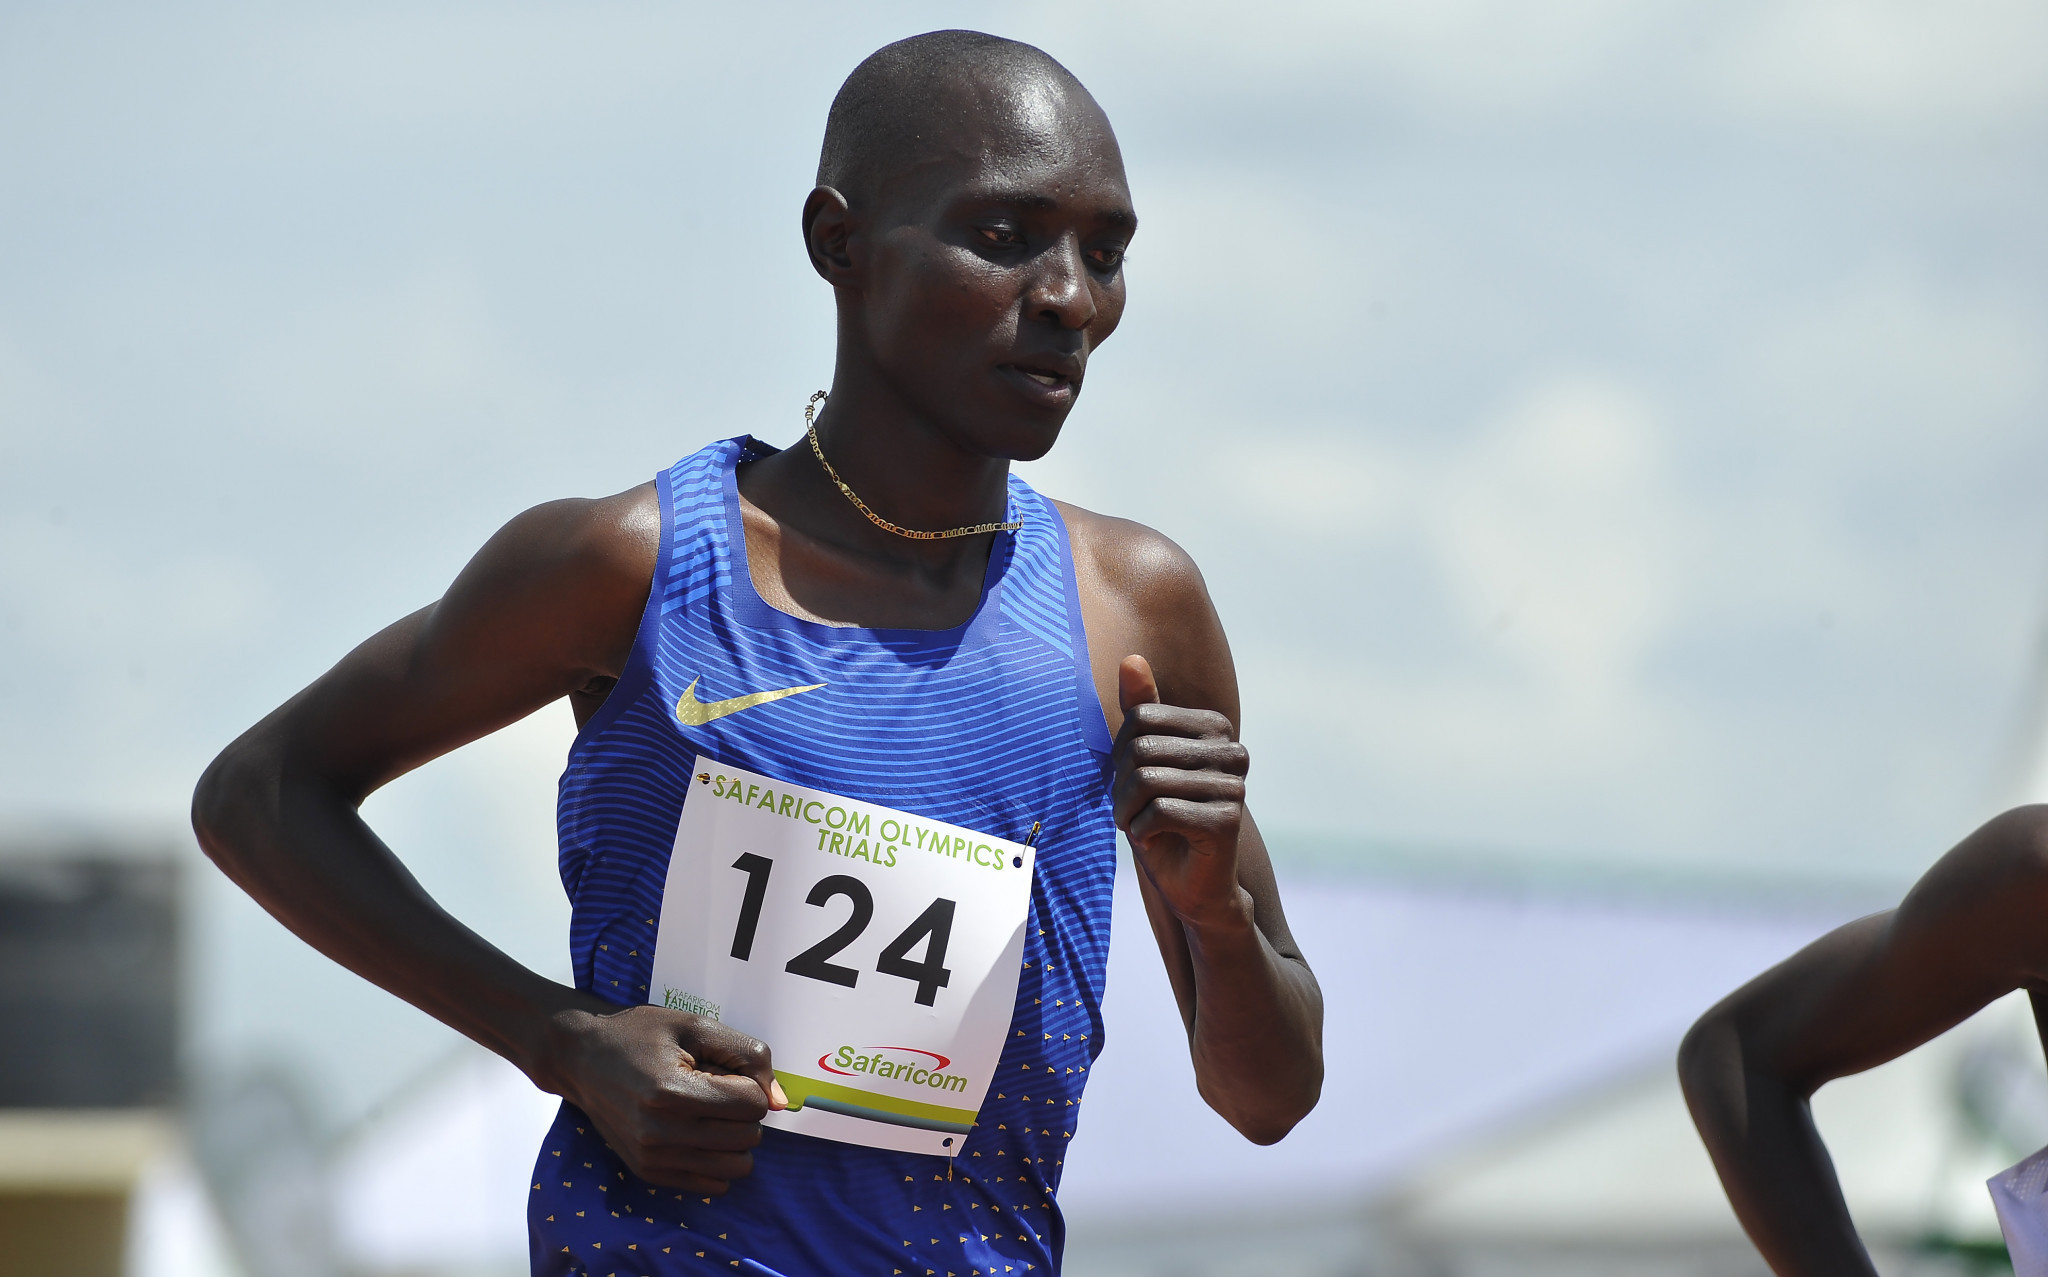 Asbel Kiprop has claimed he was given advanced warning of the test ©Getty Images